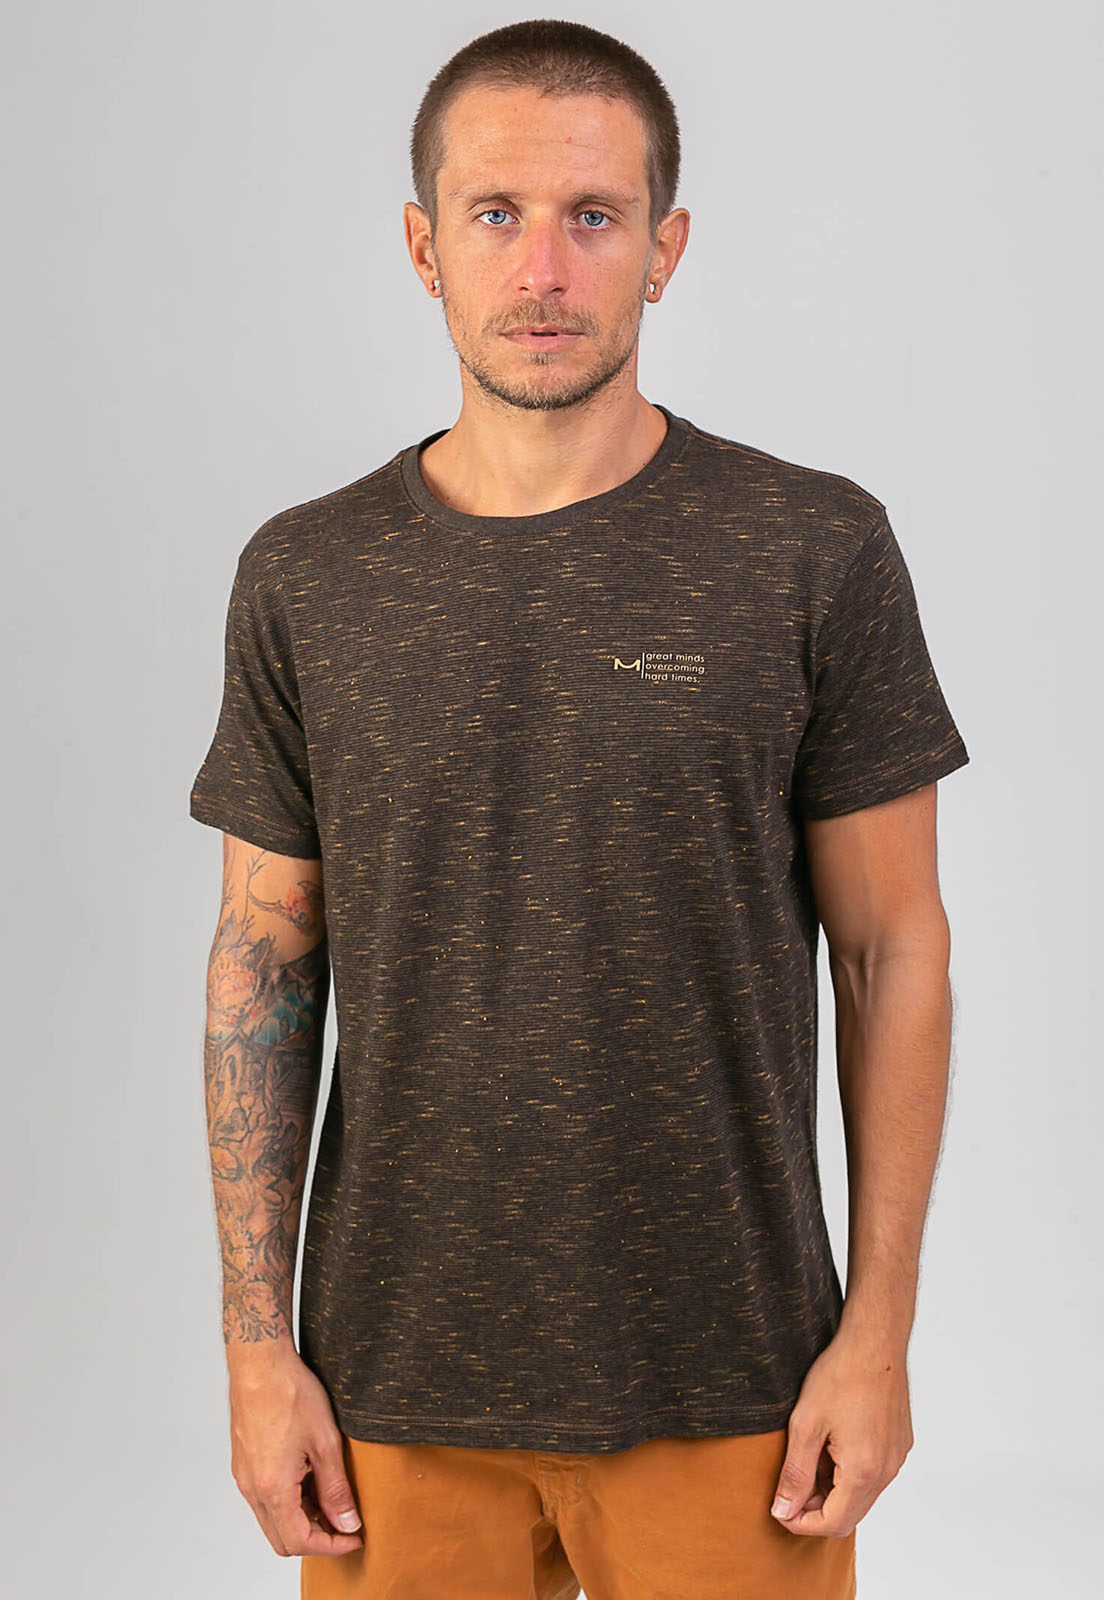 T-shirt Capuccino melty  - melty surf & Co.